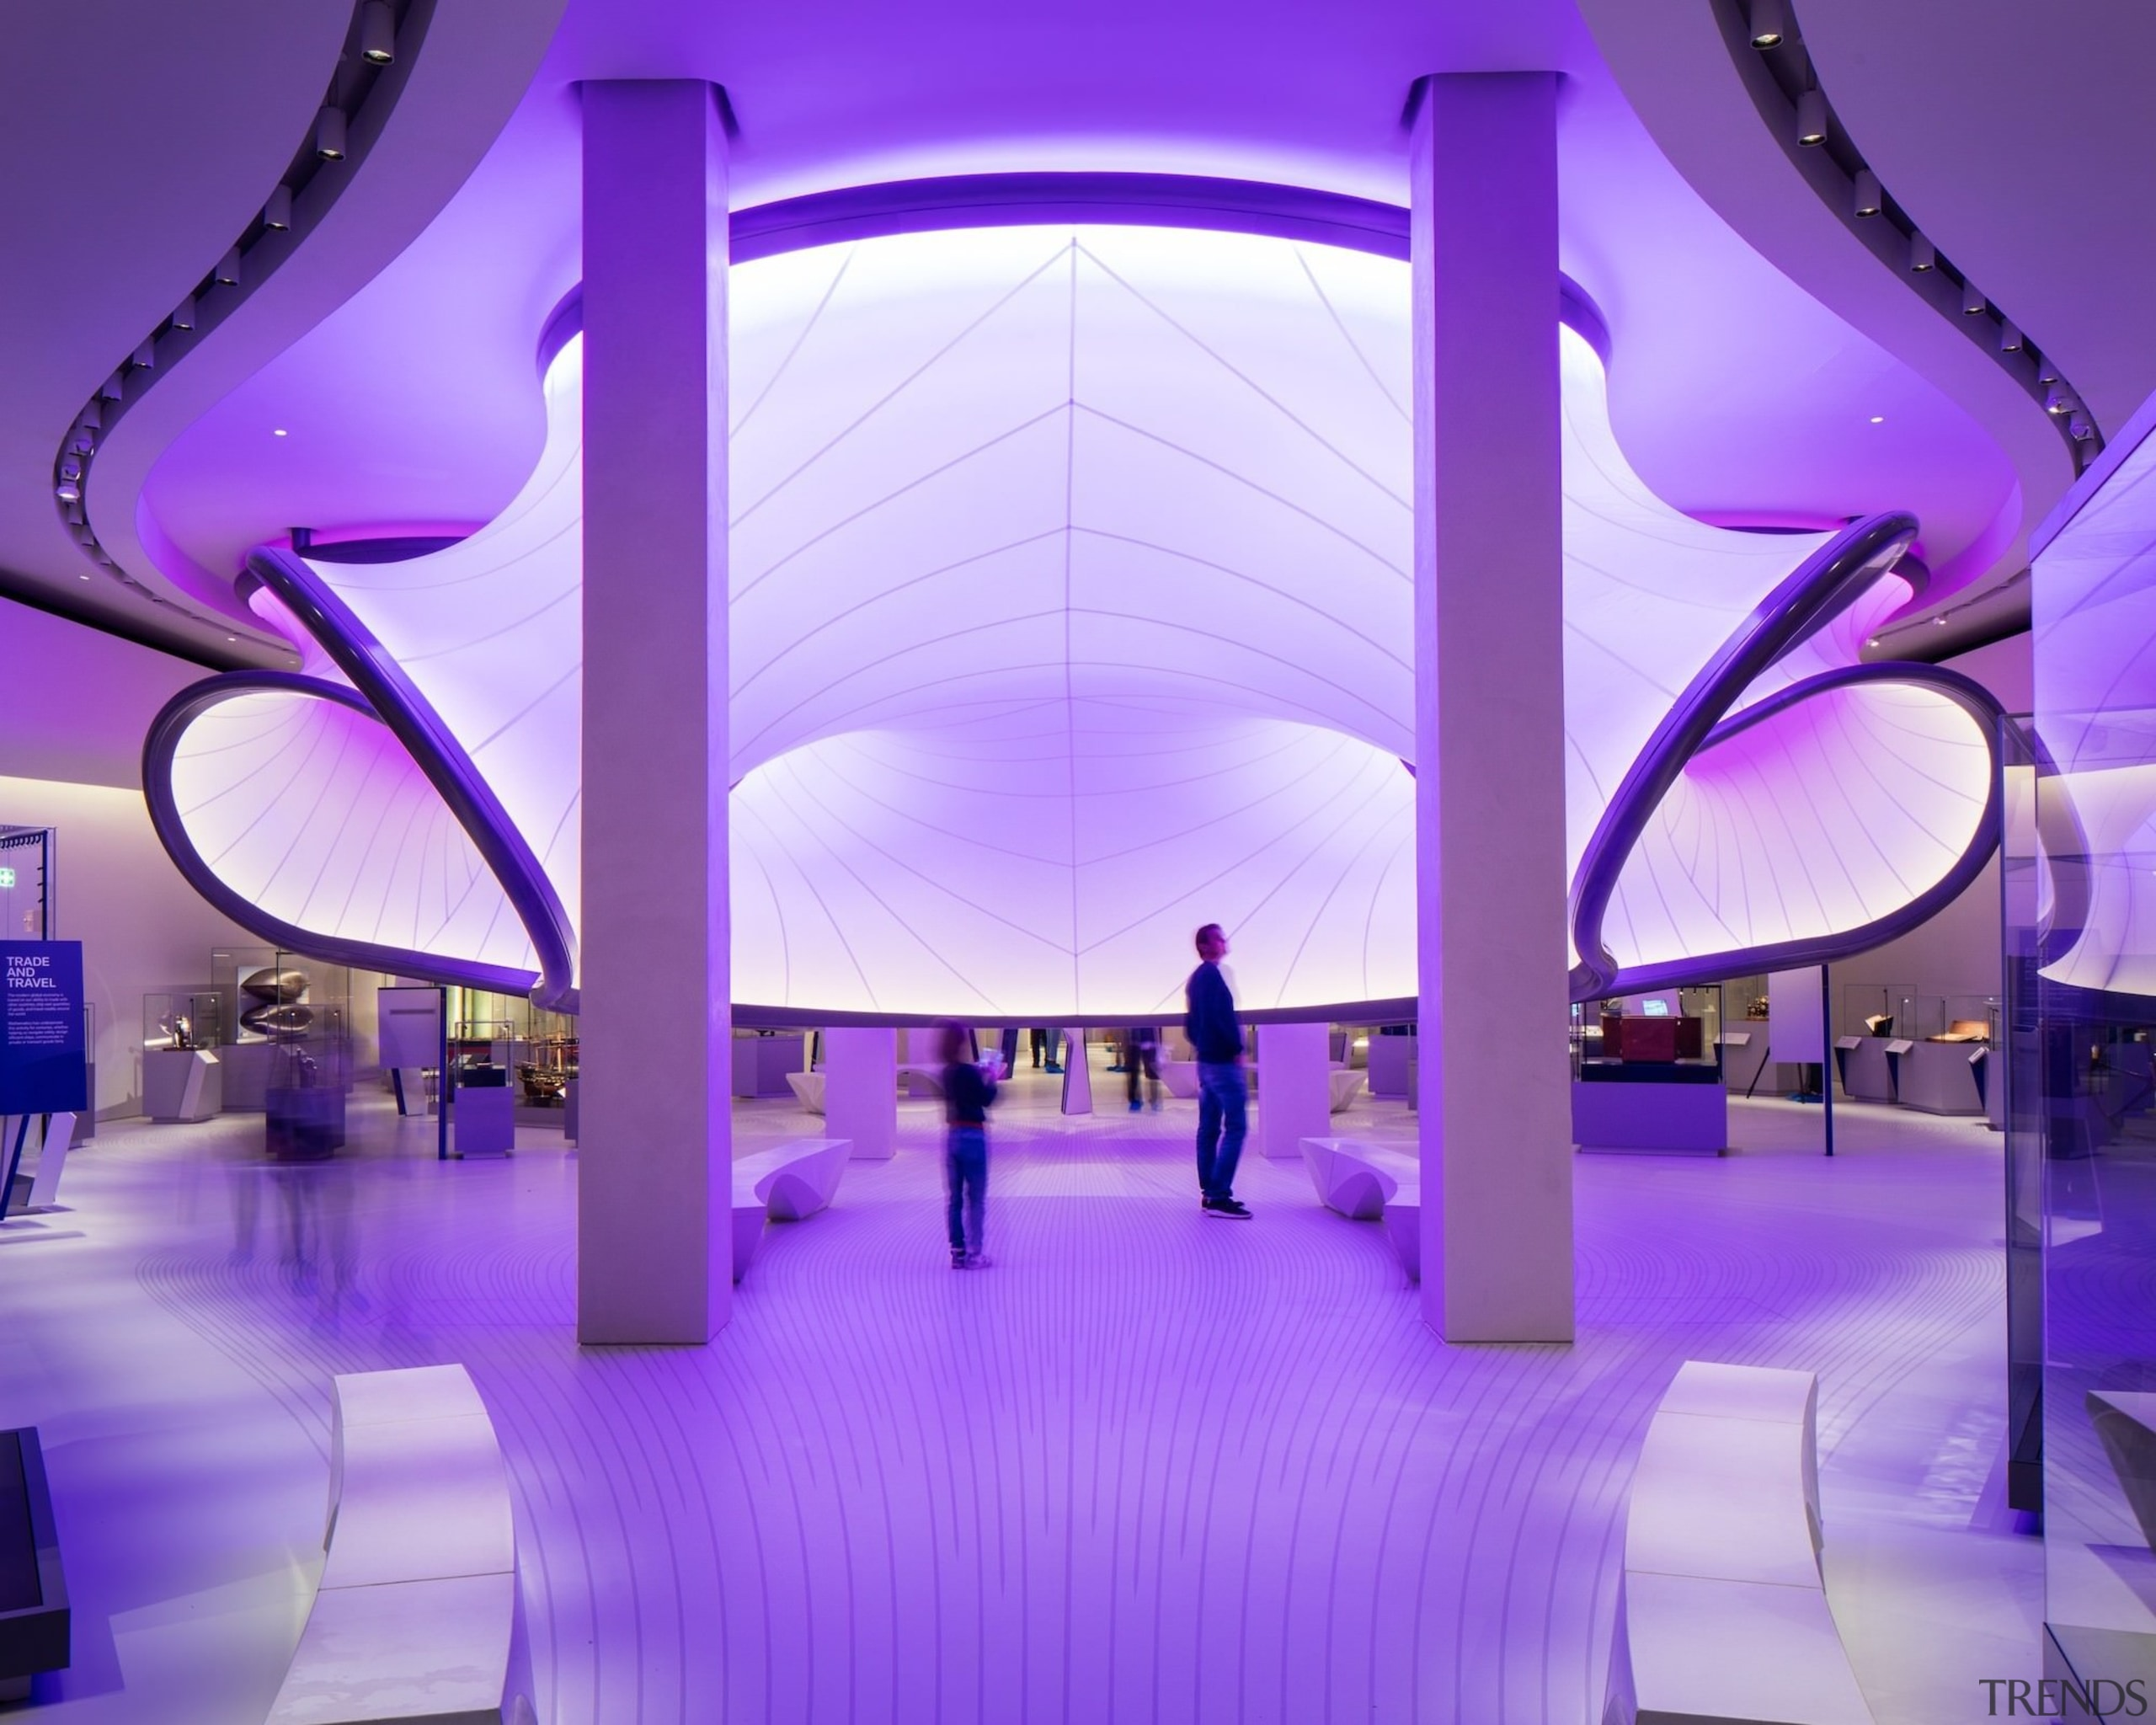 Zaha Hadid – Mathematics: The Winton Gallery – architecture, ceiling, design, function hall, interior design, light, lighting, purple, structure, violet, purple